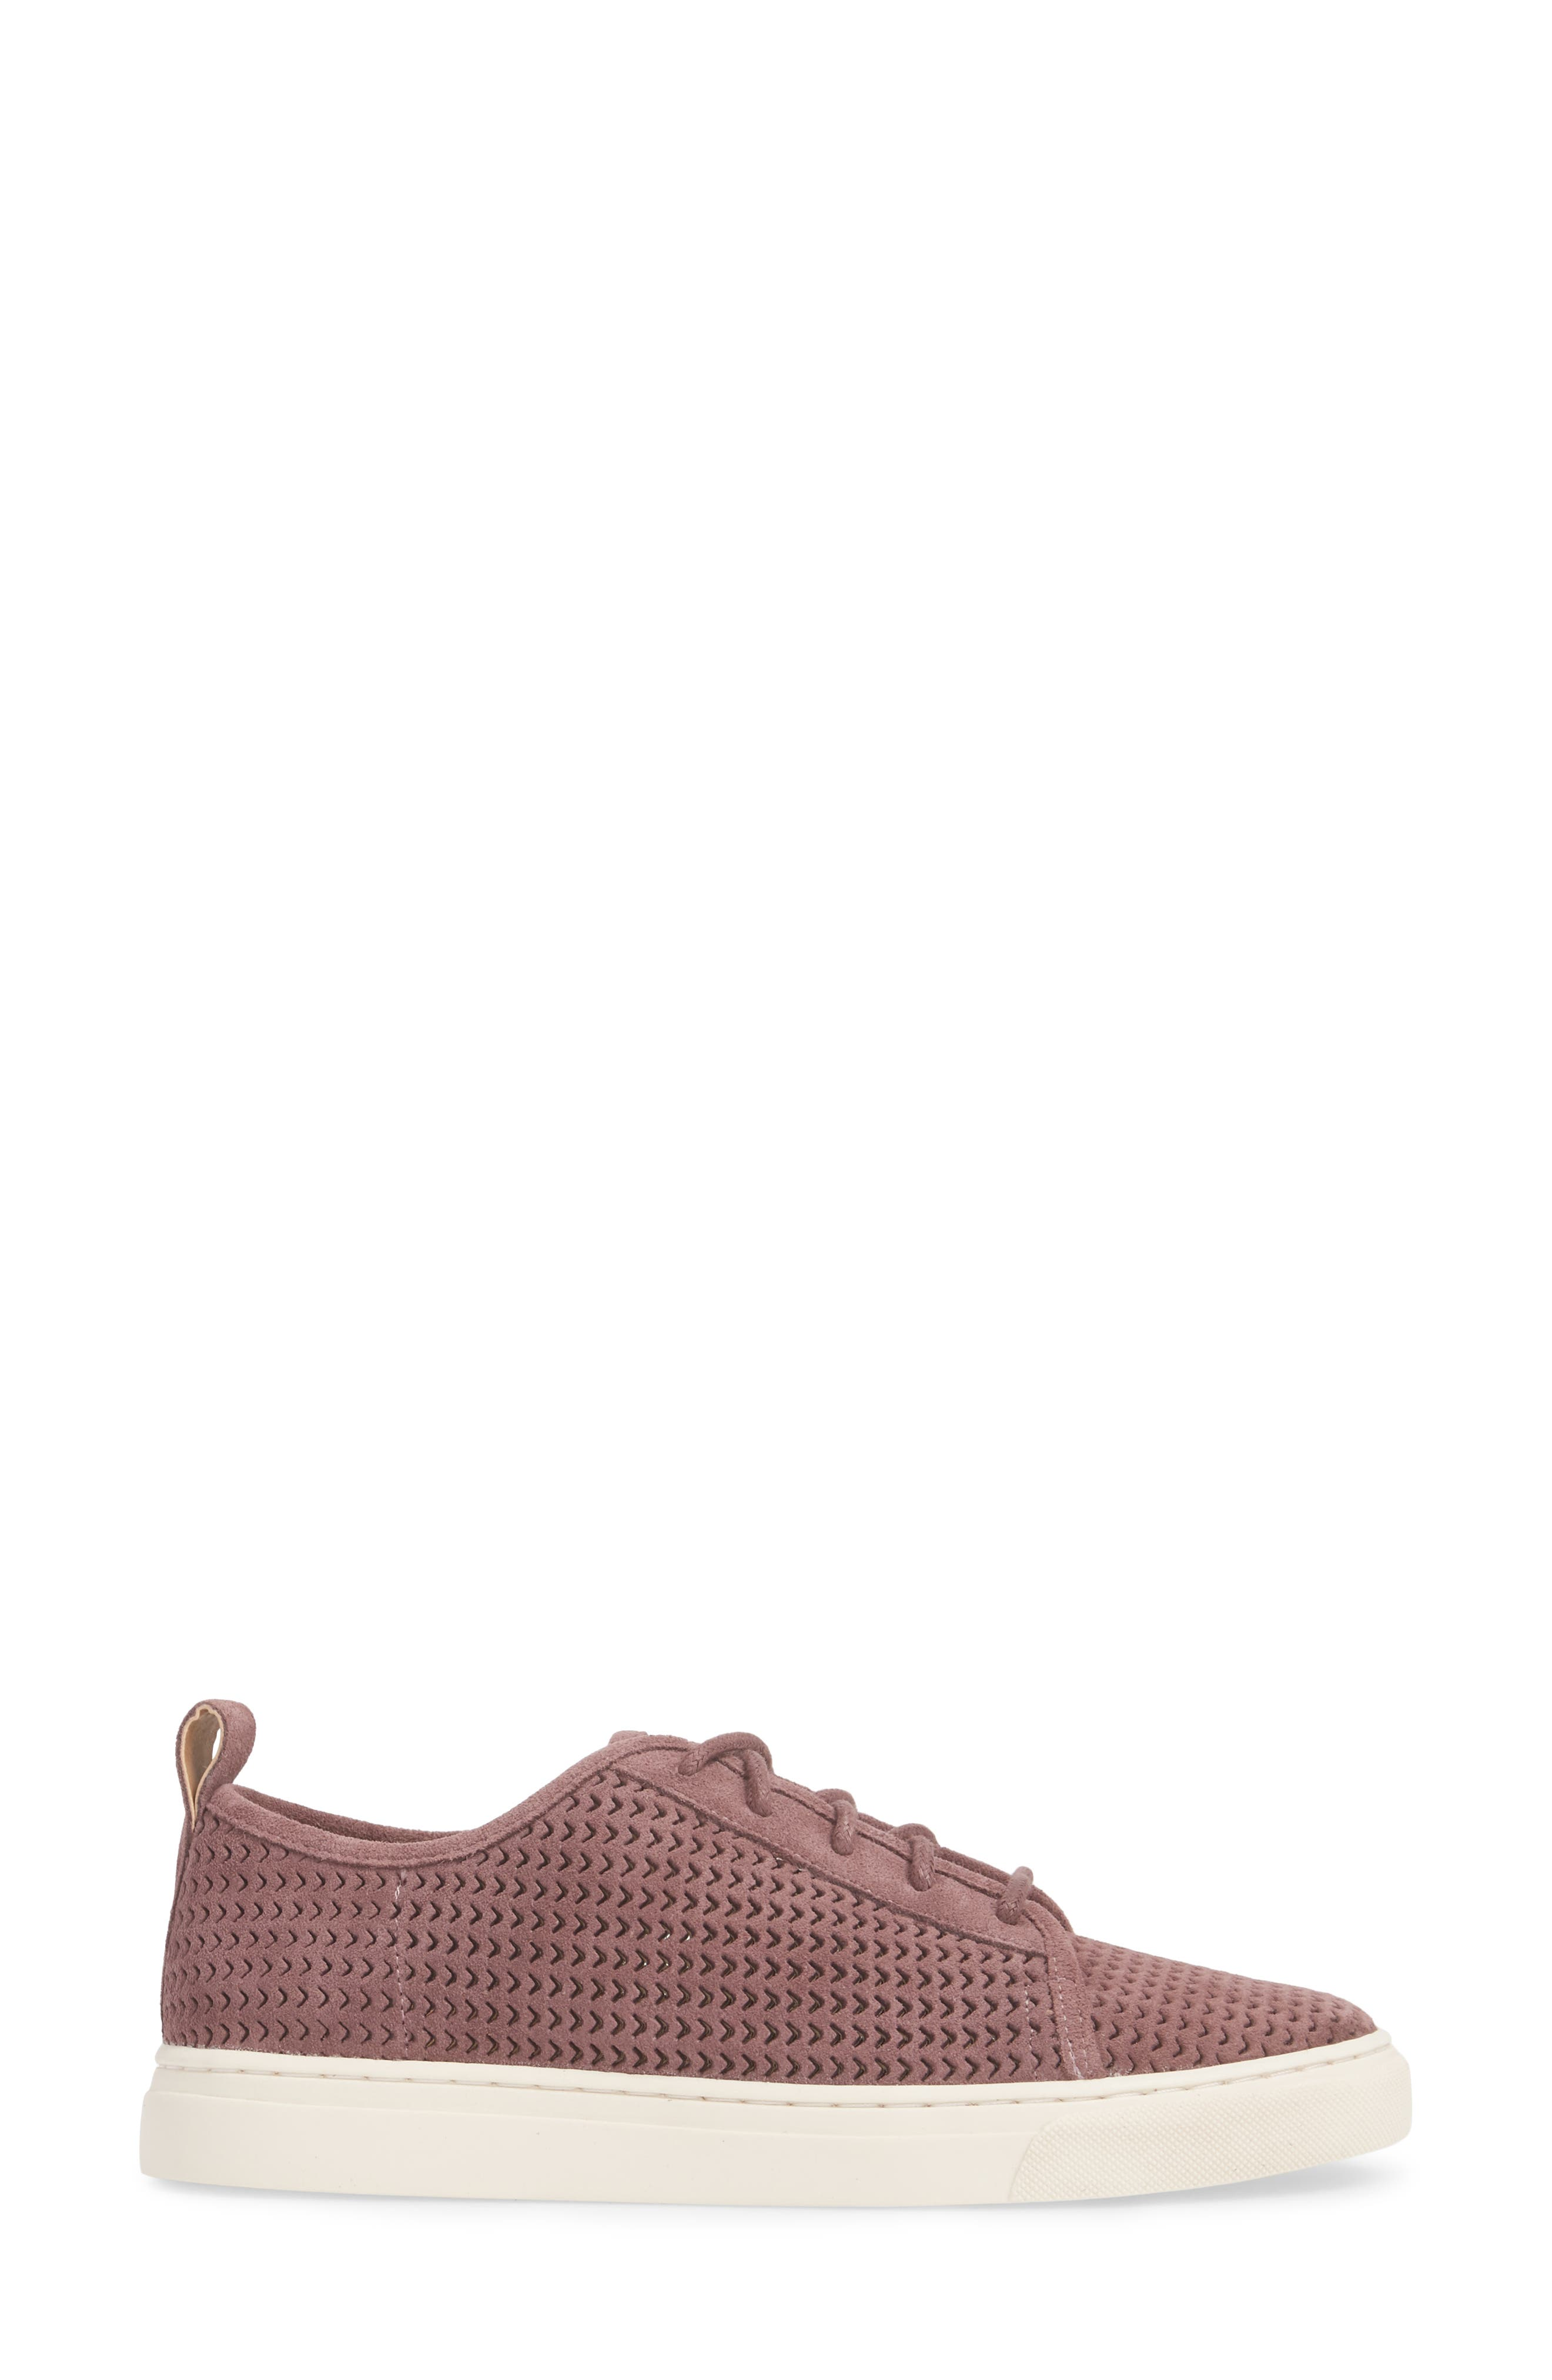 Lawove Sneaker,                             Alternate thumbnail 3, color,                             Berry Smooth Suede